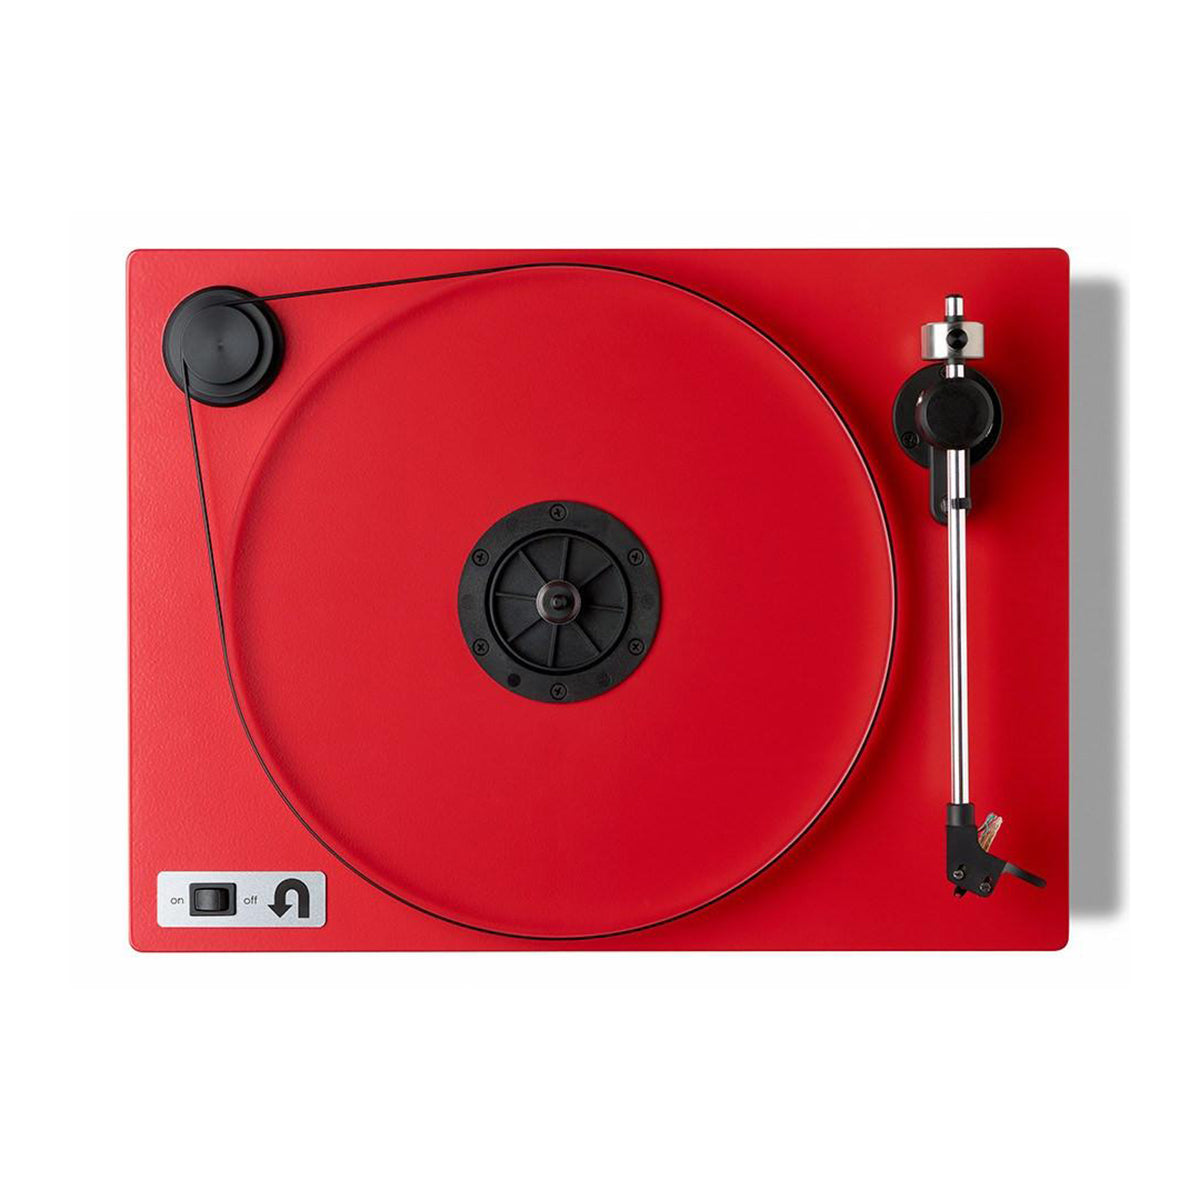 U-Turn Audio: Orbit Plus Turntable w/ Built In Preamp (OM5e) - Red